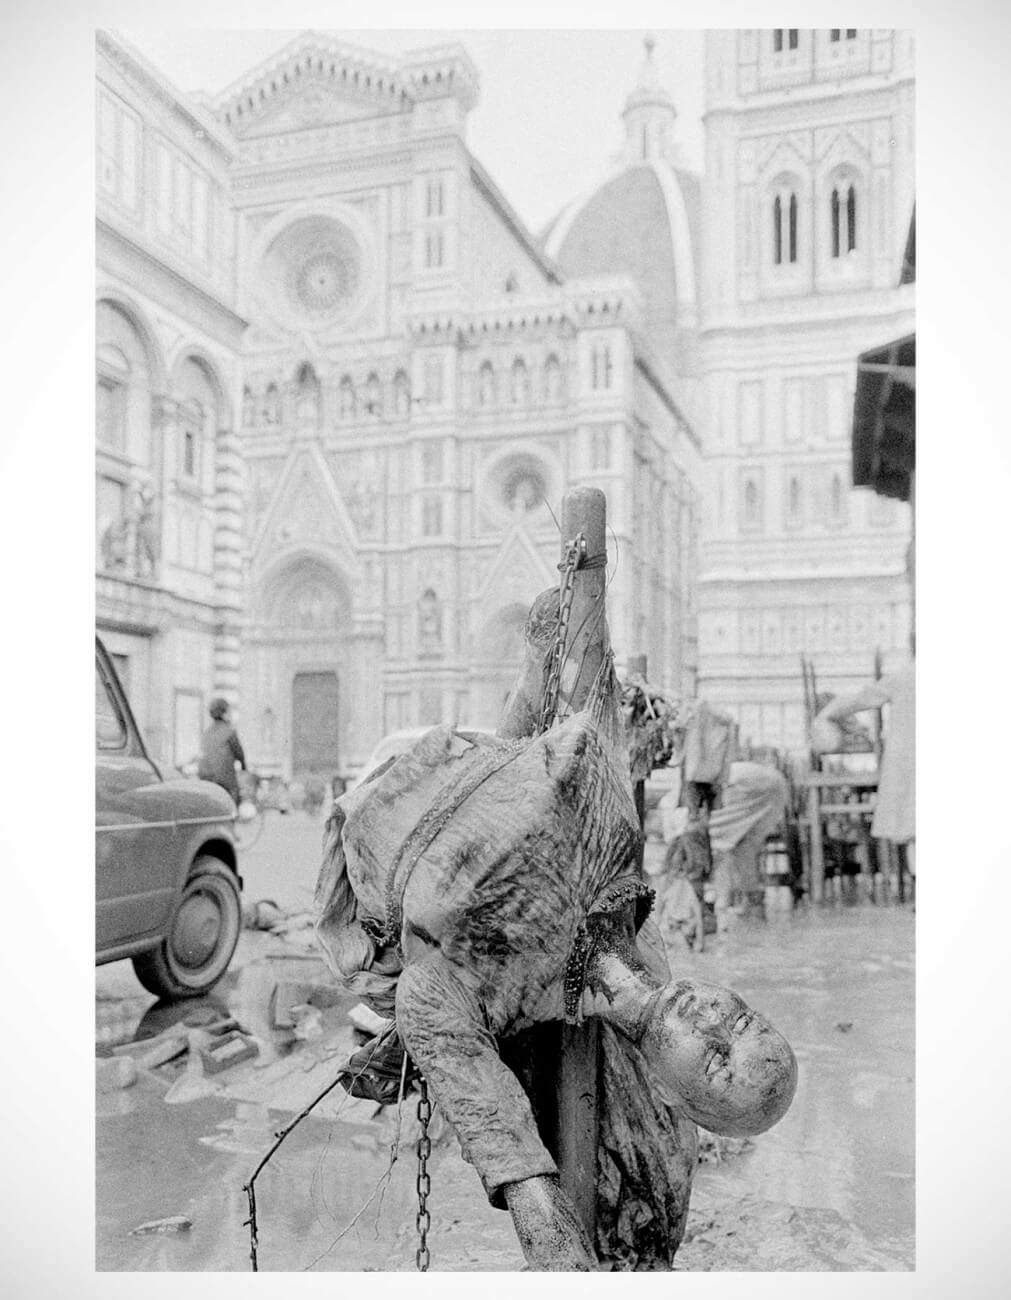 Balthazar Korab |  Balthazar Korab - Mannequin - vintage print from the Florence Flood collection